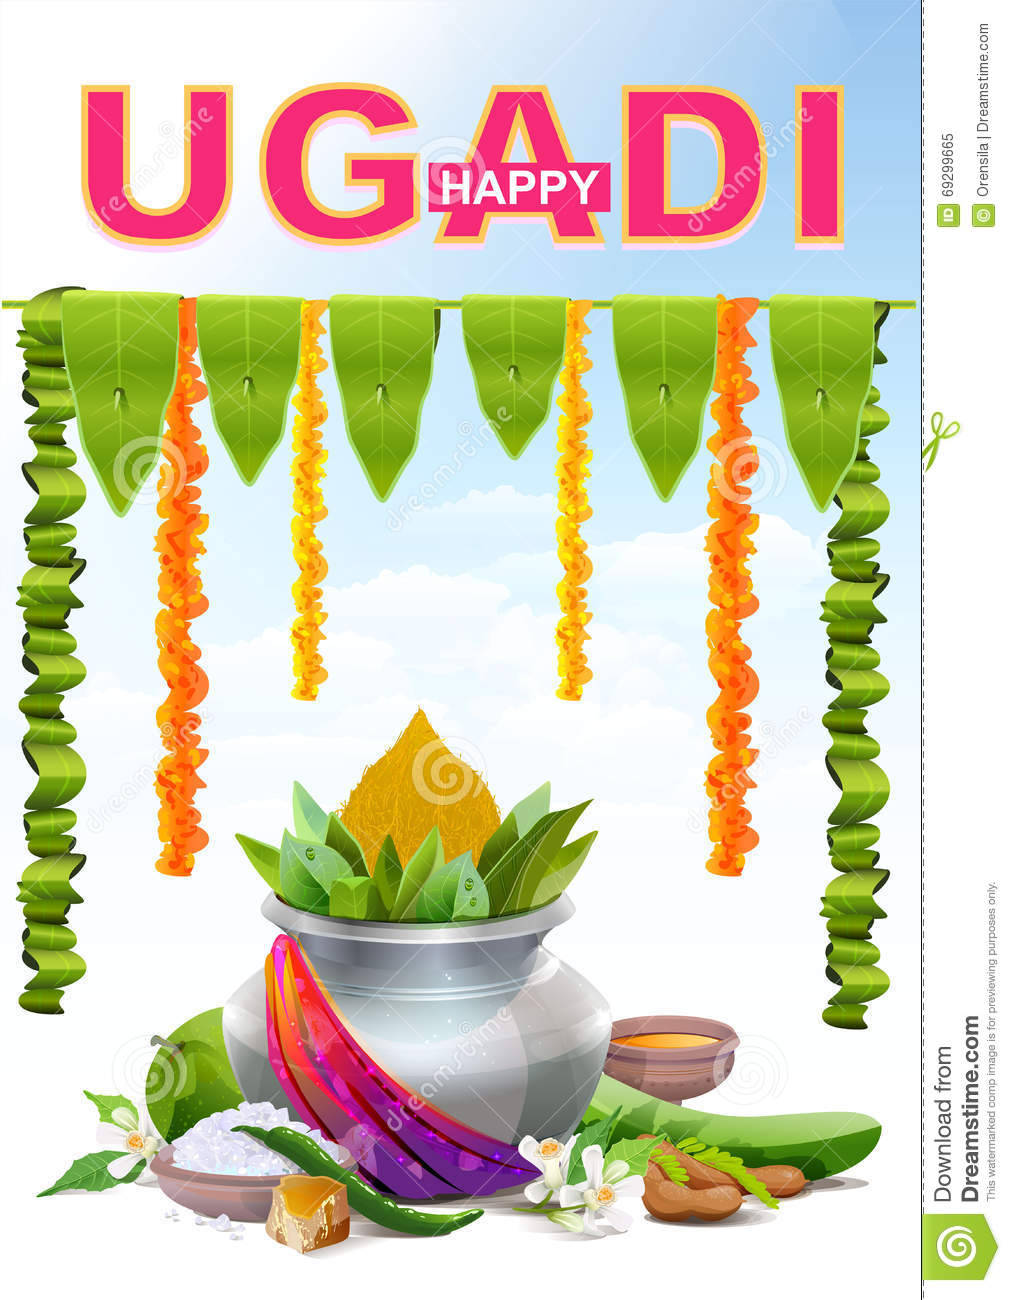 Happy ugadi template greeting card for holiday ugadi silver pot happy ugadi template greeting card for holiday ugadi silver pot kristyandbryce Images